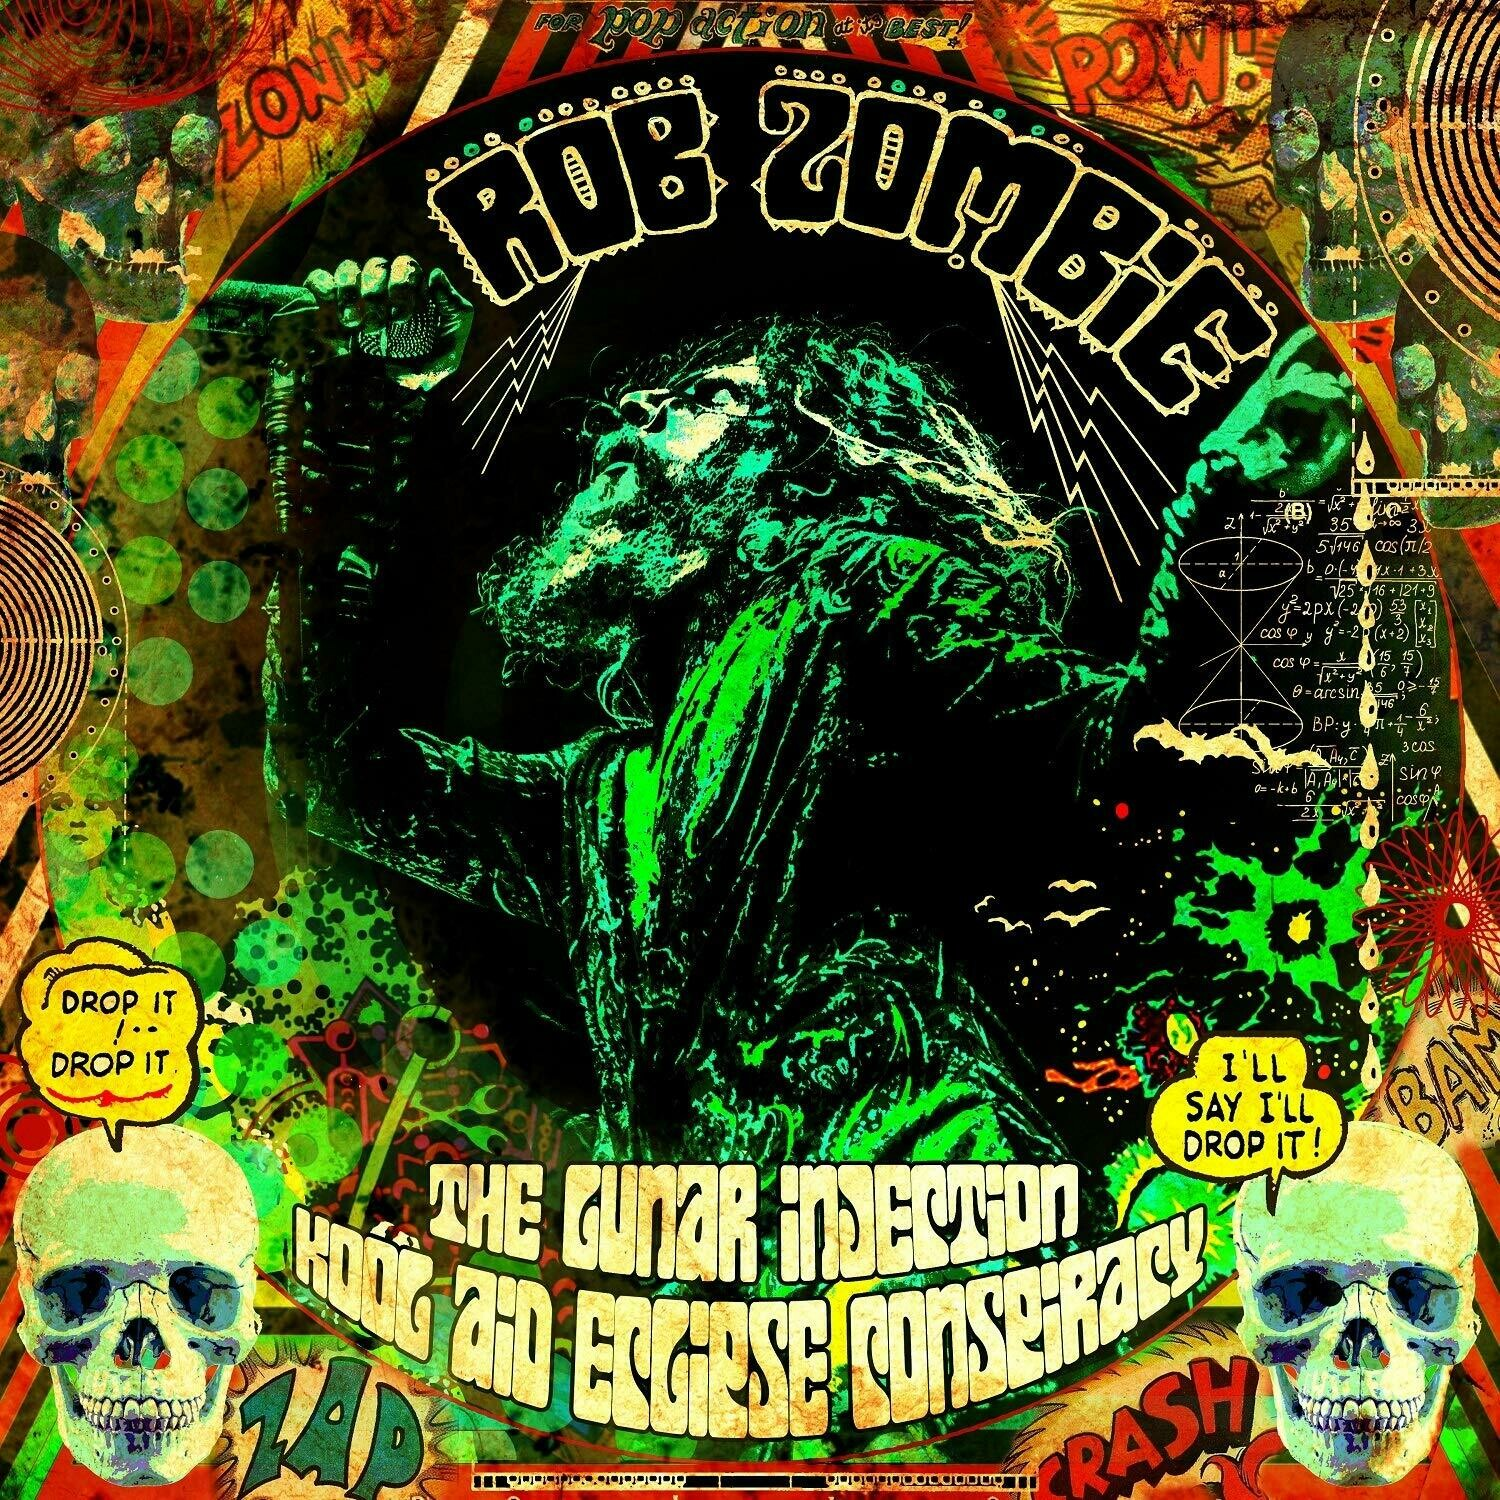 """Rob Zombie """"The Lunar Injection Kool Aid Eclipse Conspiracy"""" *Red w/ Black & White Splatter*"""